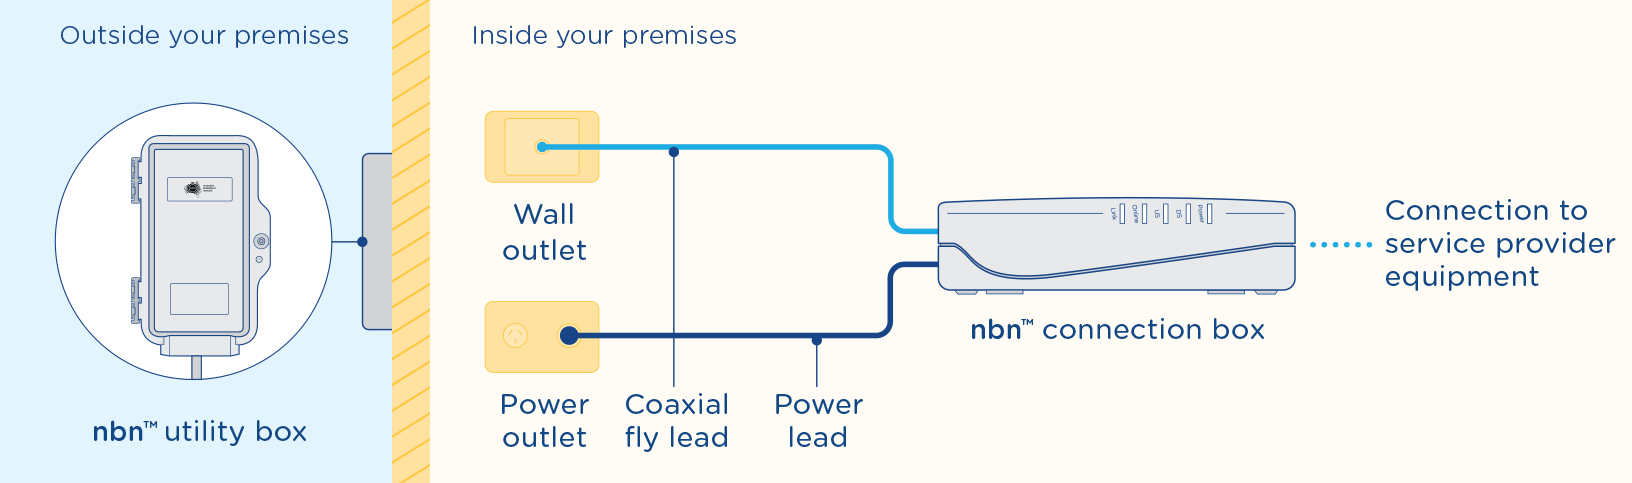 how to tell if you have nbn or adsl